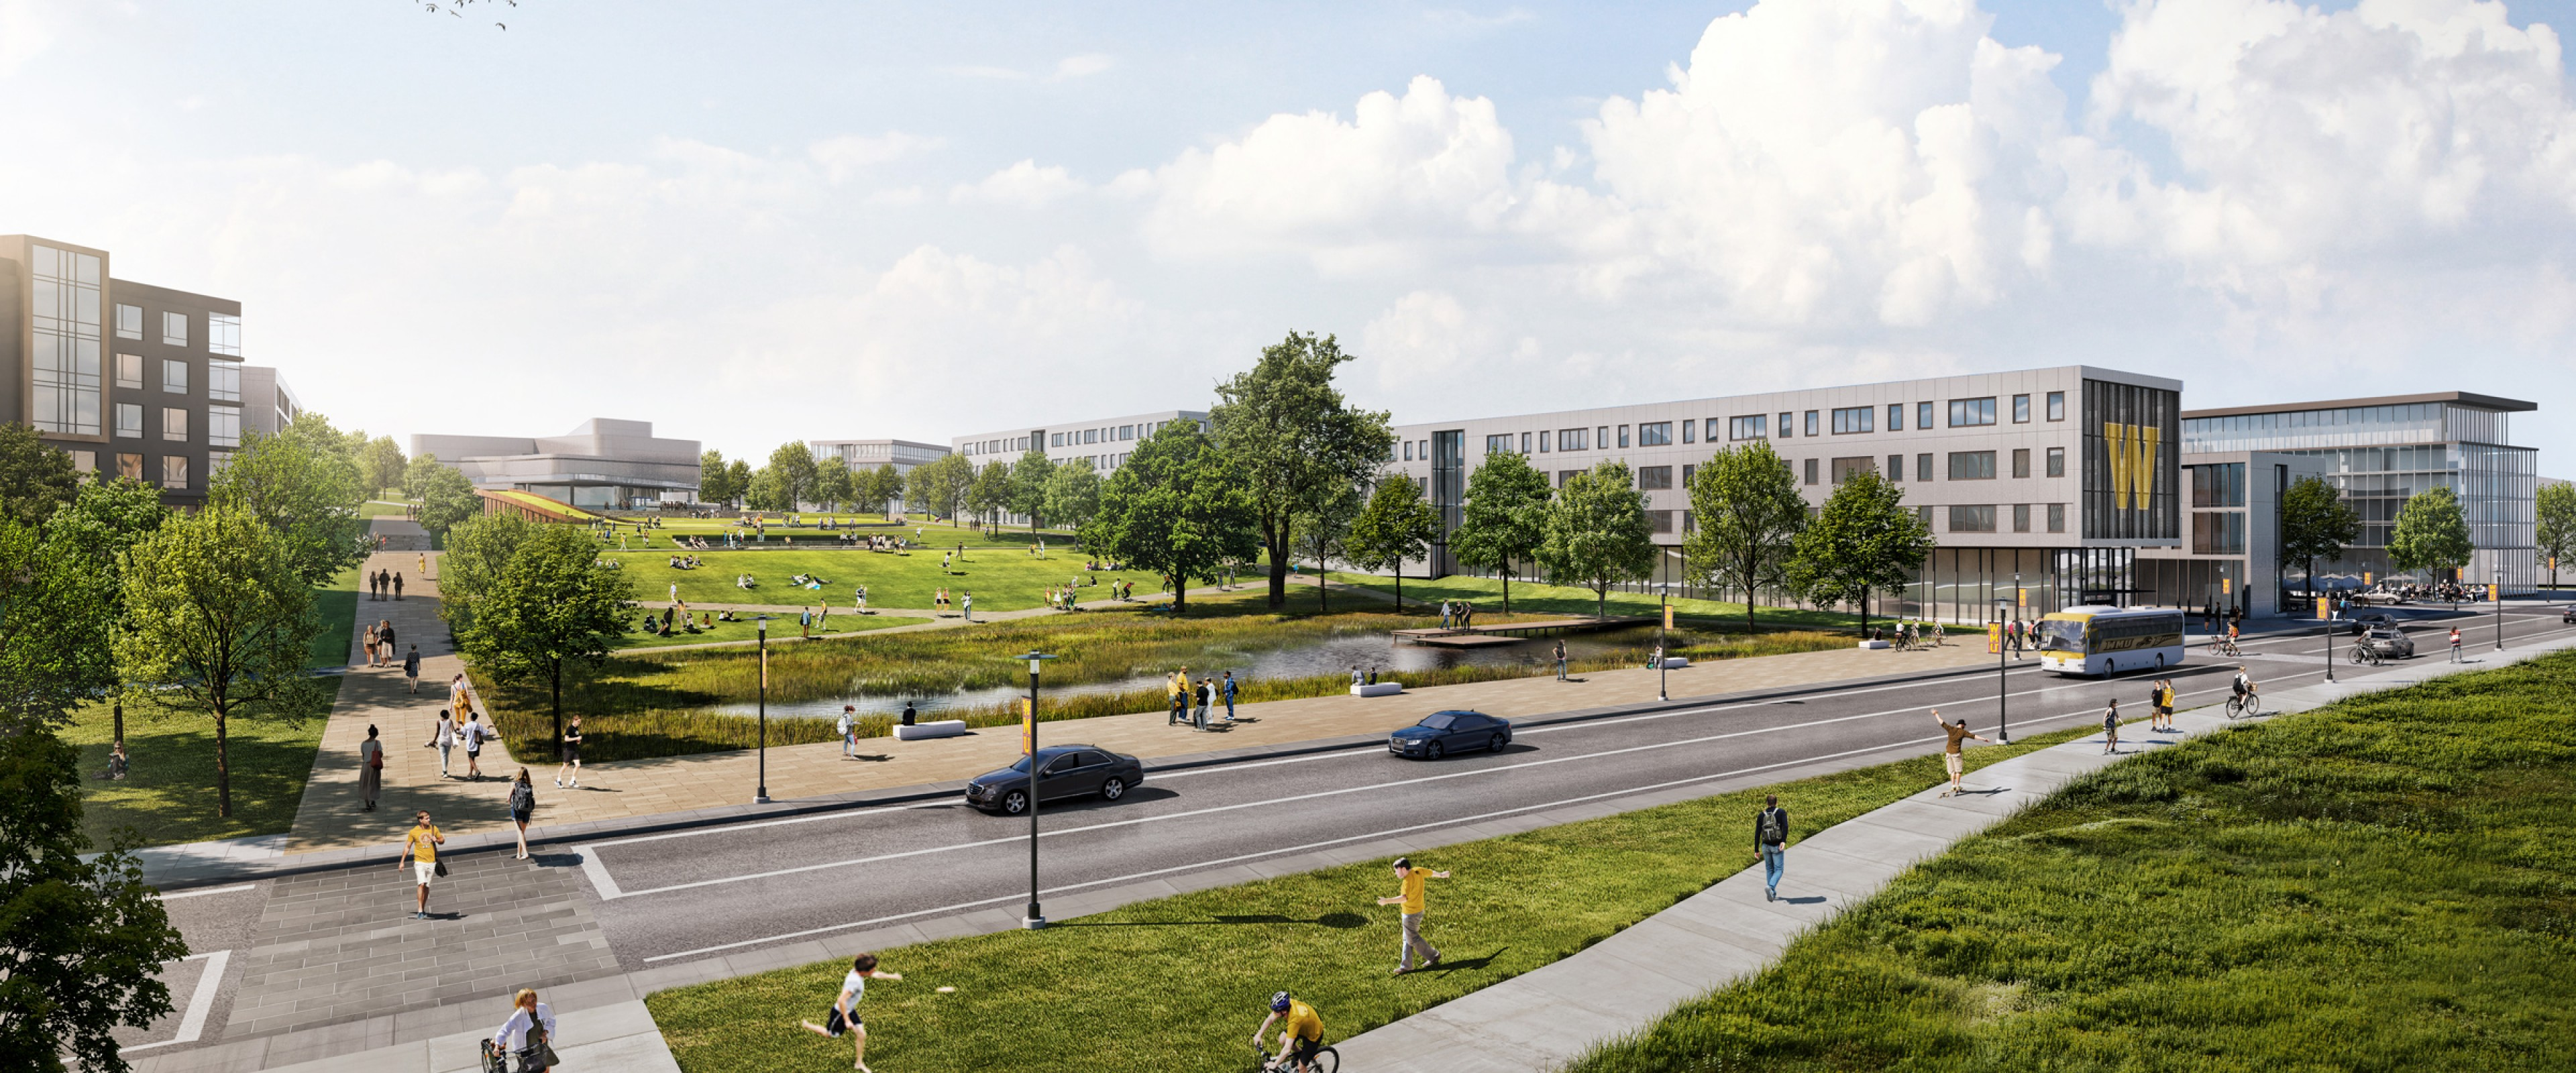 Rendering of the Viewshed, a large green space with wide sidewalks